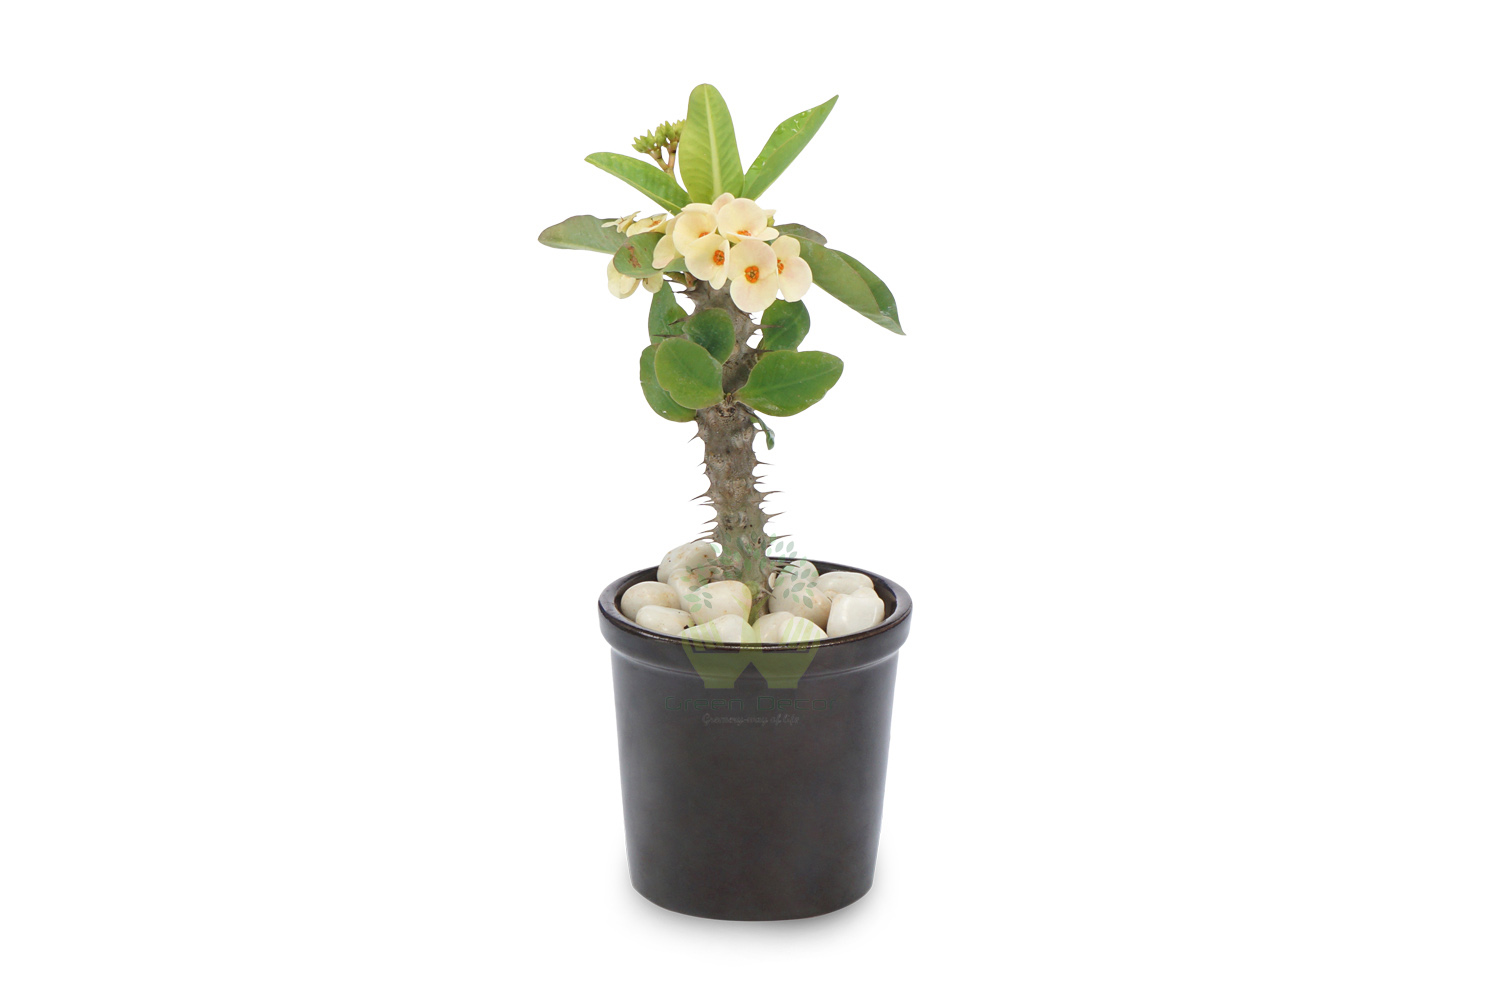 Buy Euphorbia Milli-Yellow Plants , White Pots and seeds in Delhi NCR by the best online nursery shop Greendecor.